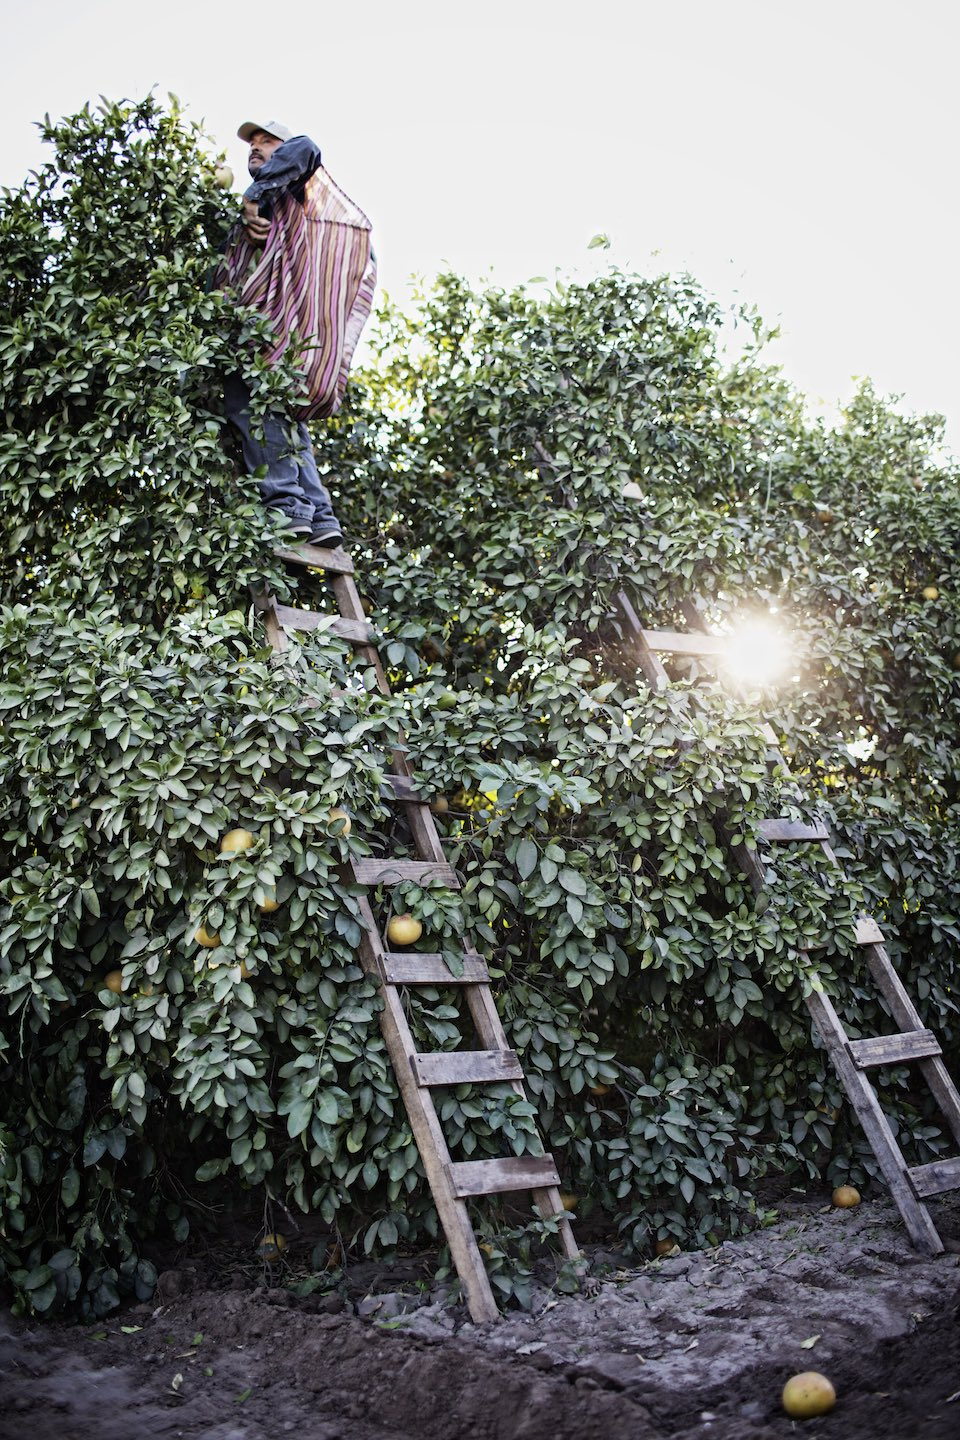 Farmer standing on a wood ladder at the top of an orange tree.